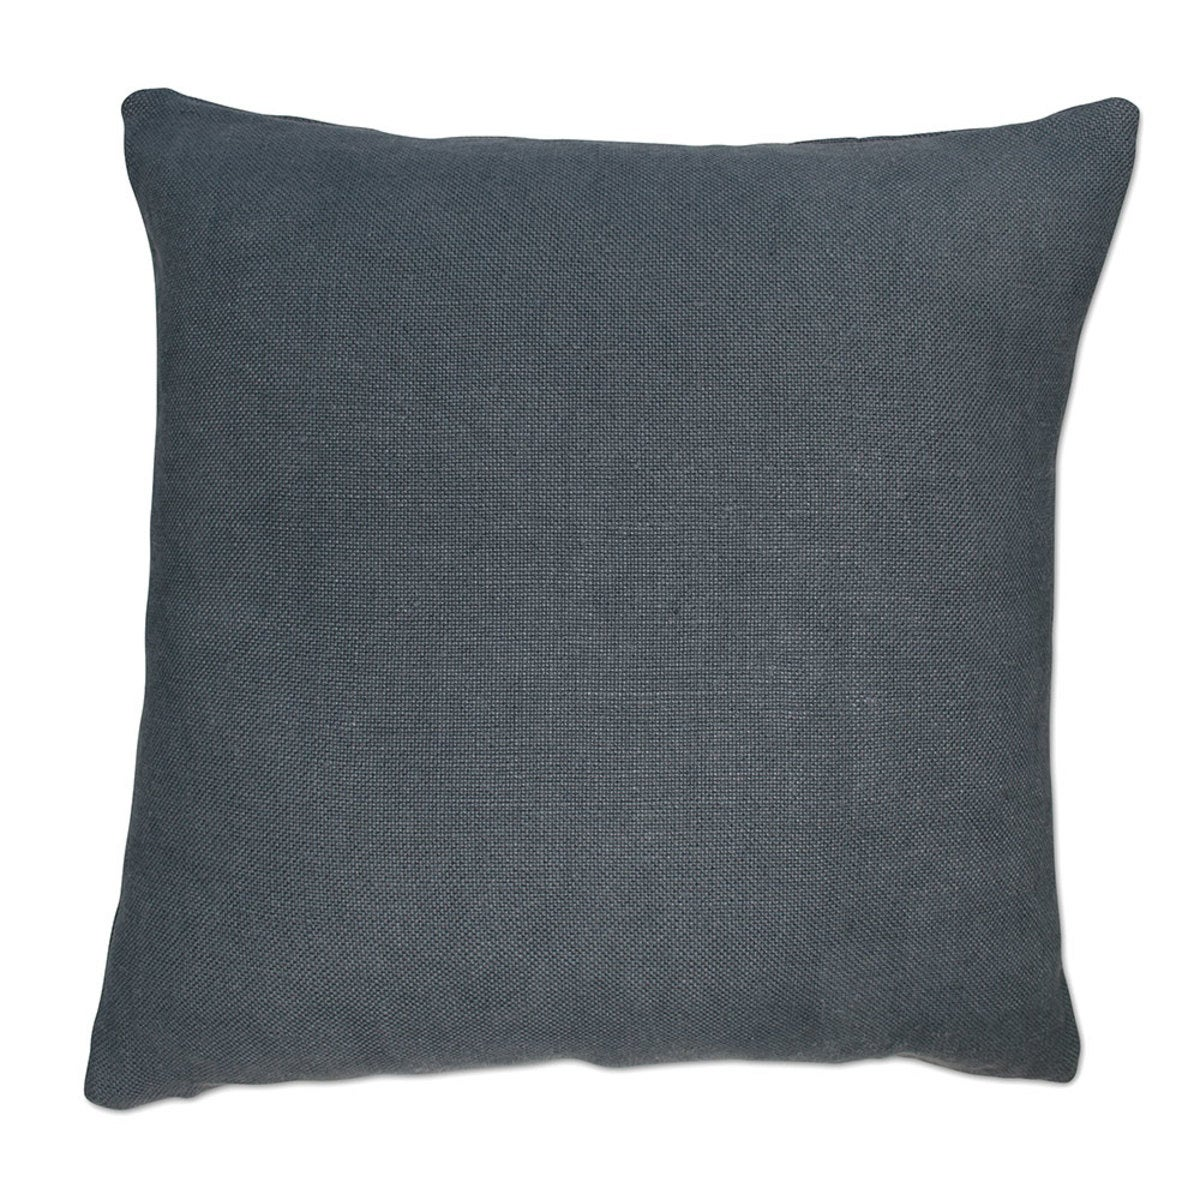 "100% Pure Linen Pillow Cover 24"" x 24"" - Stone"